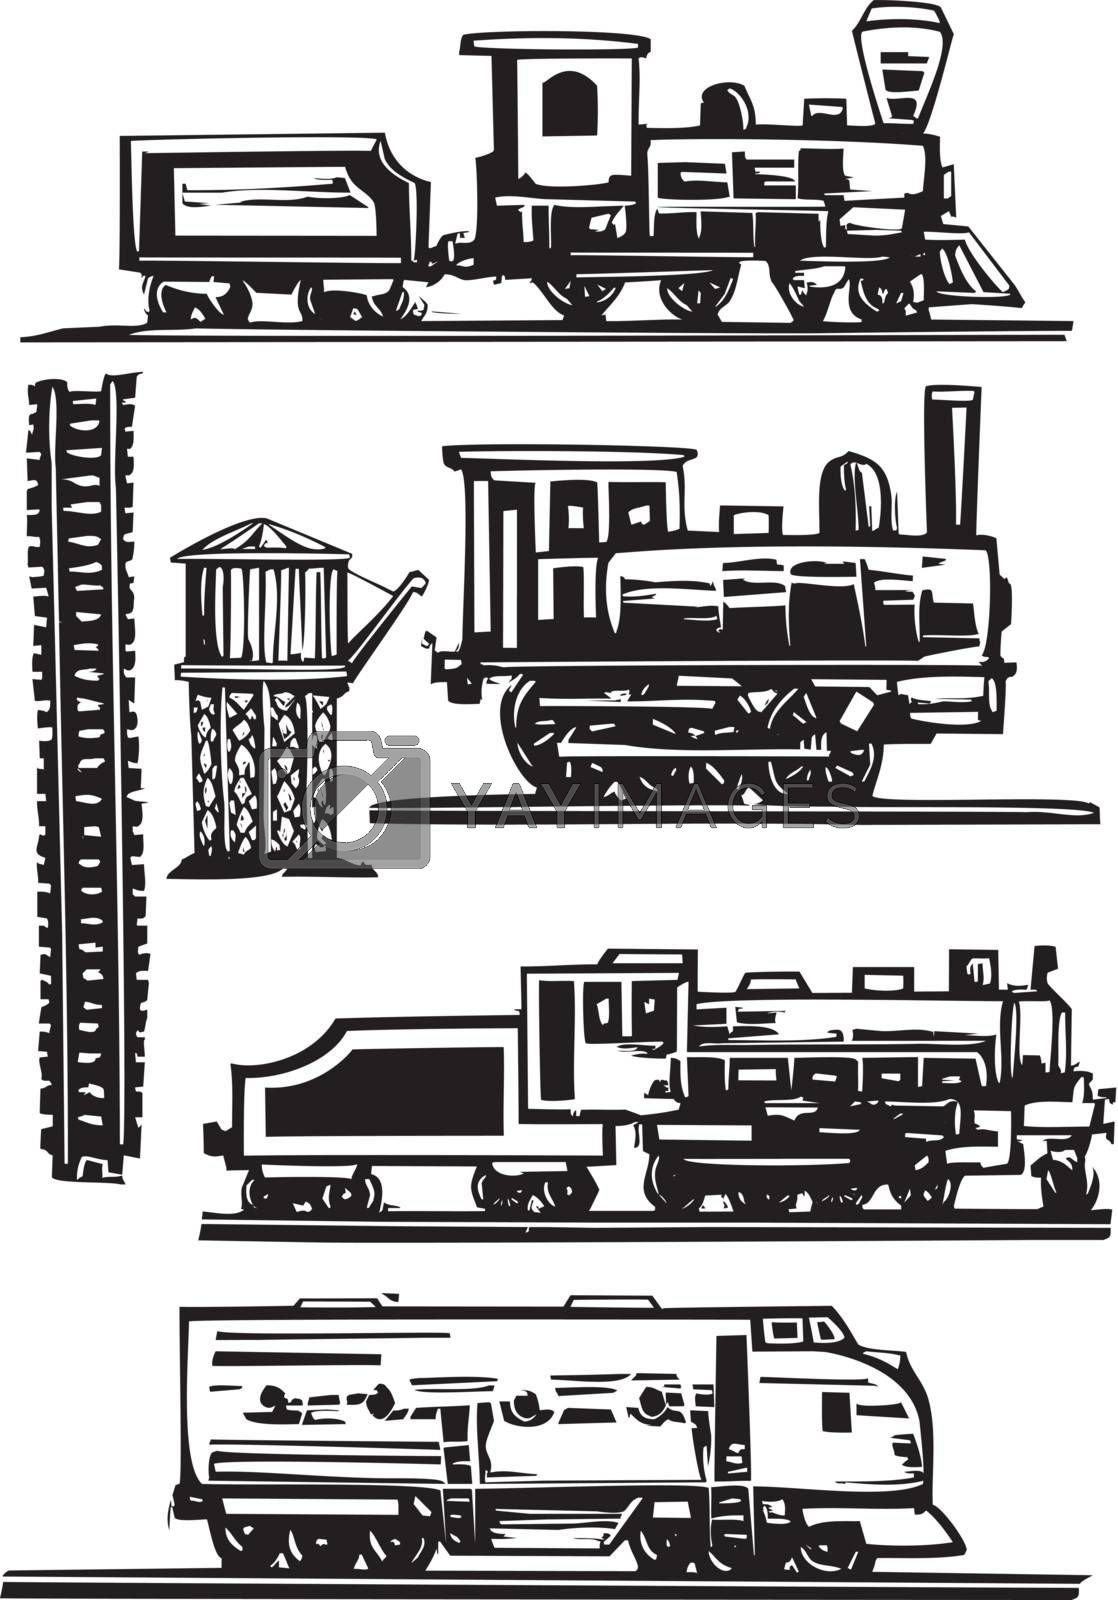 Woodcut style images of railroad trains, water towers and tracks.